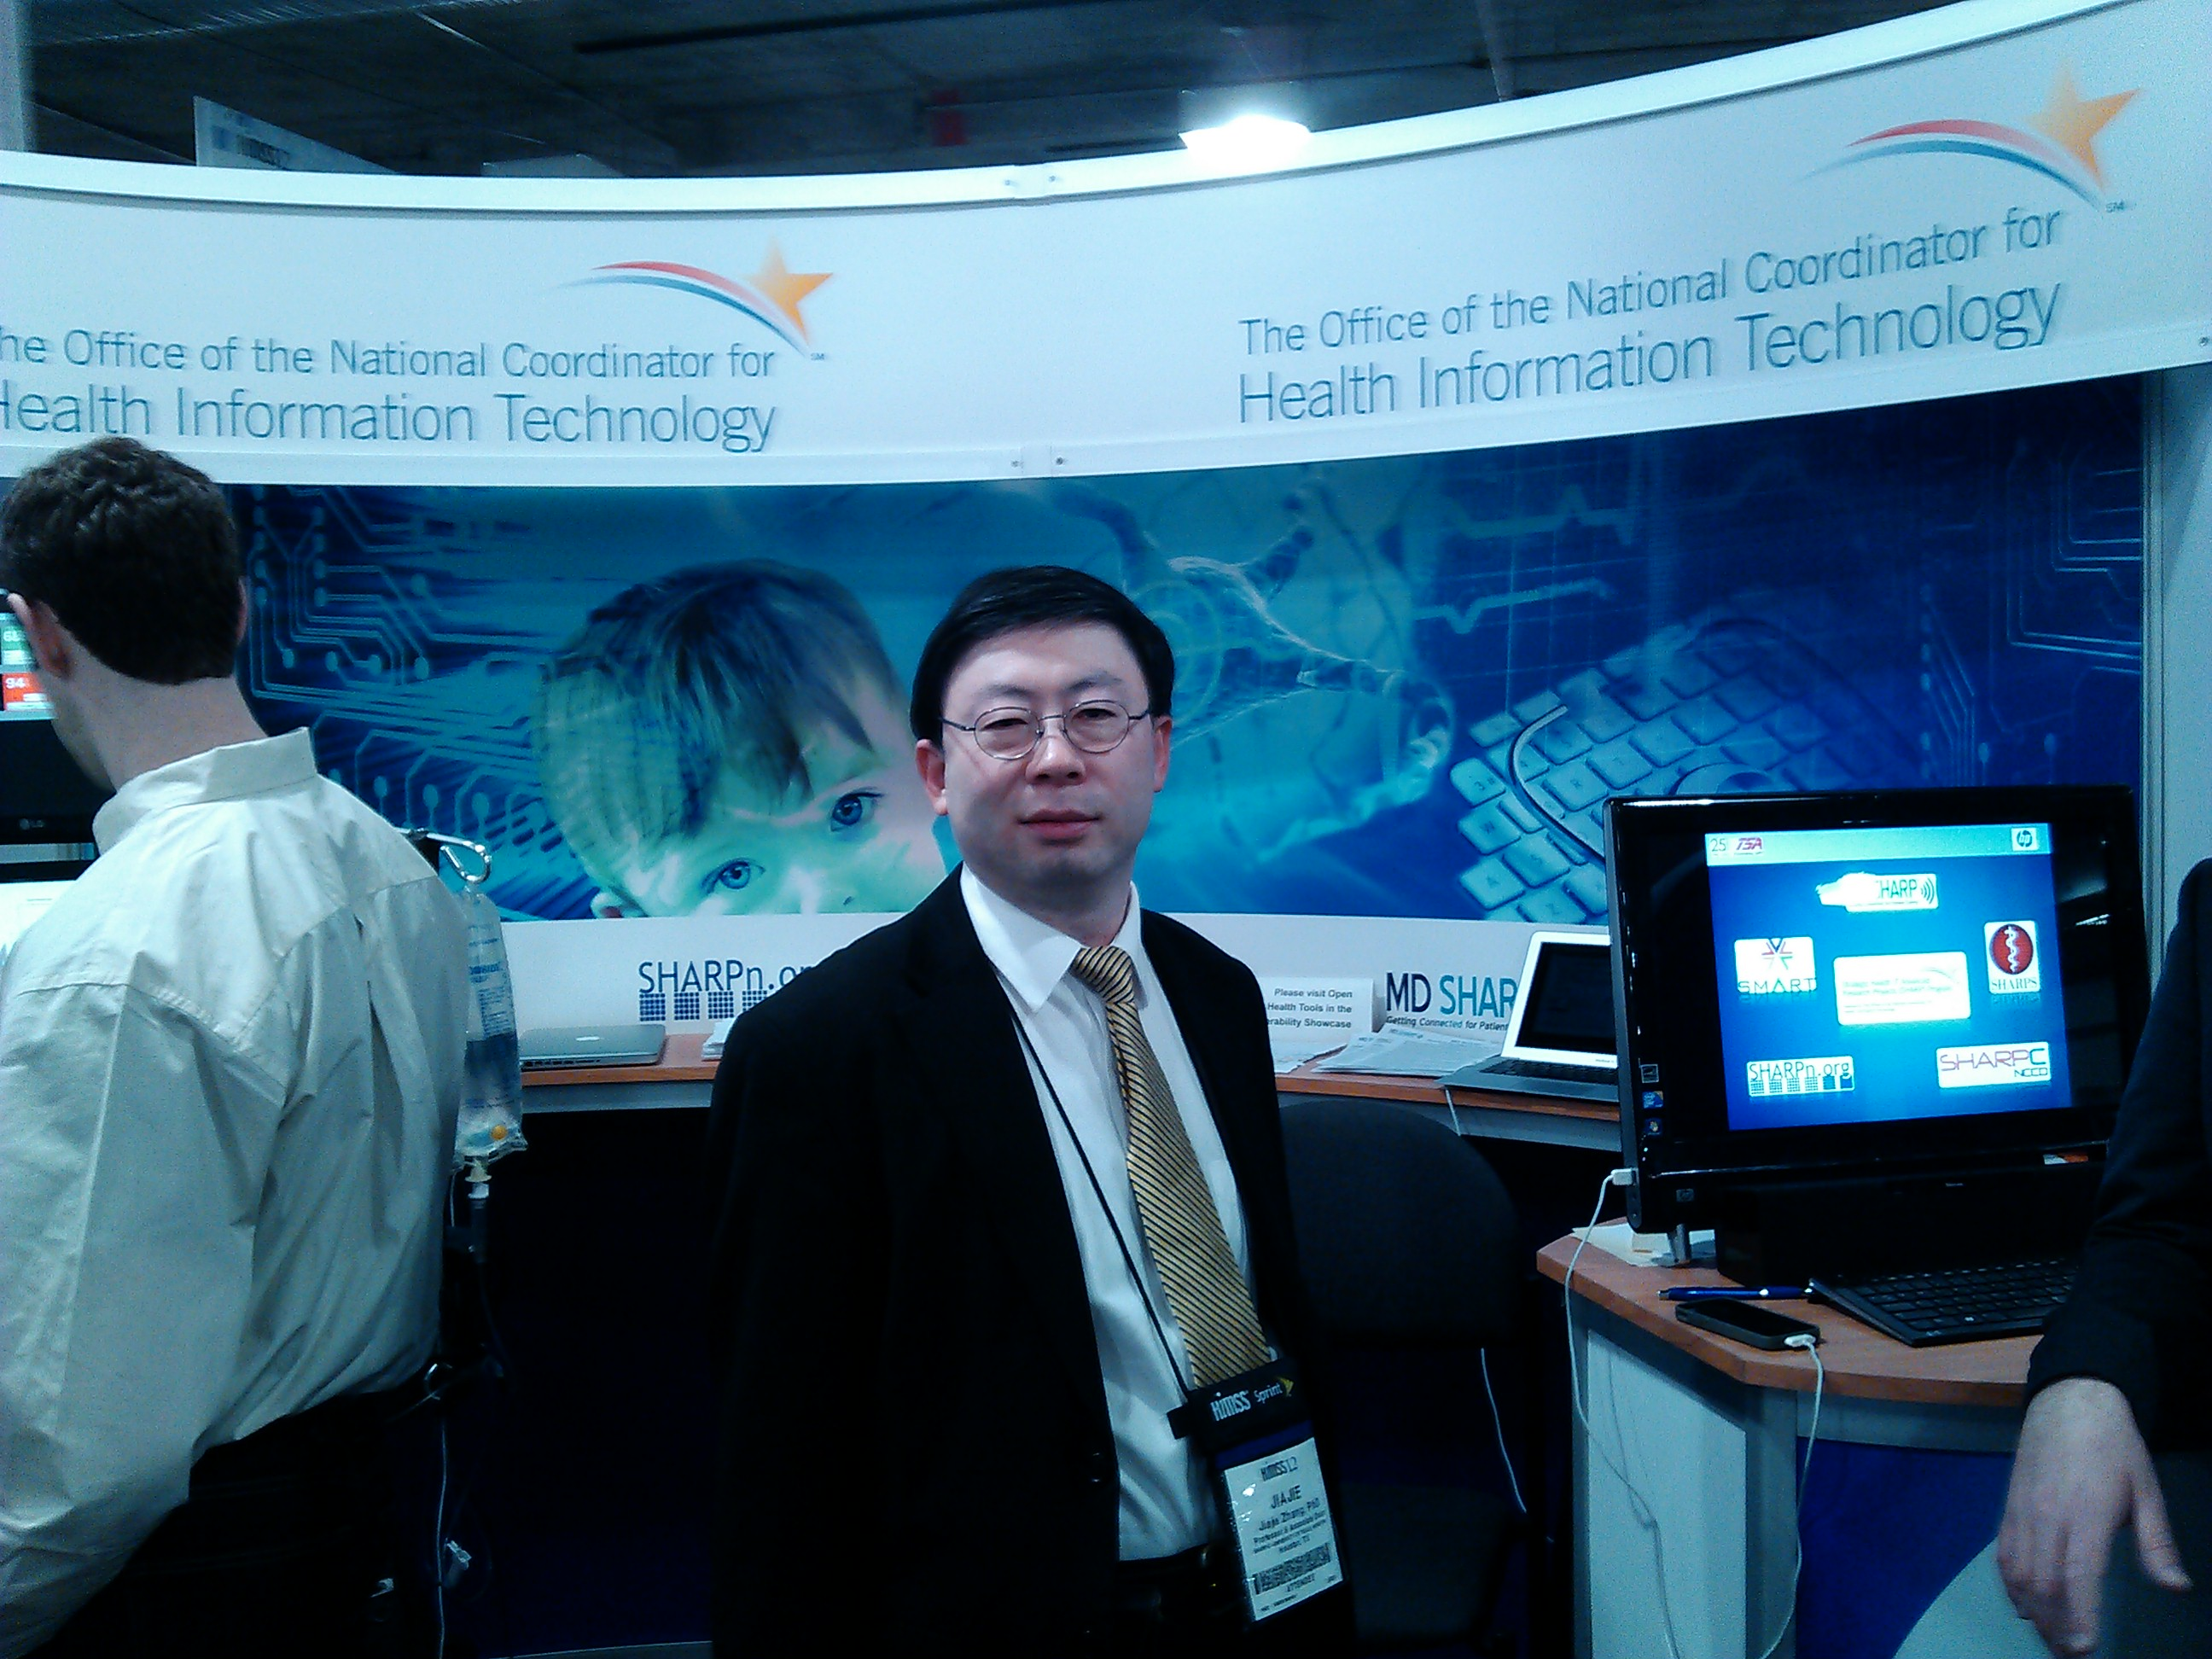 Dr. Jiajie Zhang at HIMSS 2012 SHARP Grantees Booth